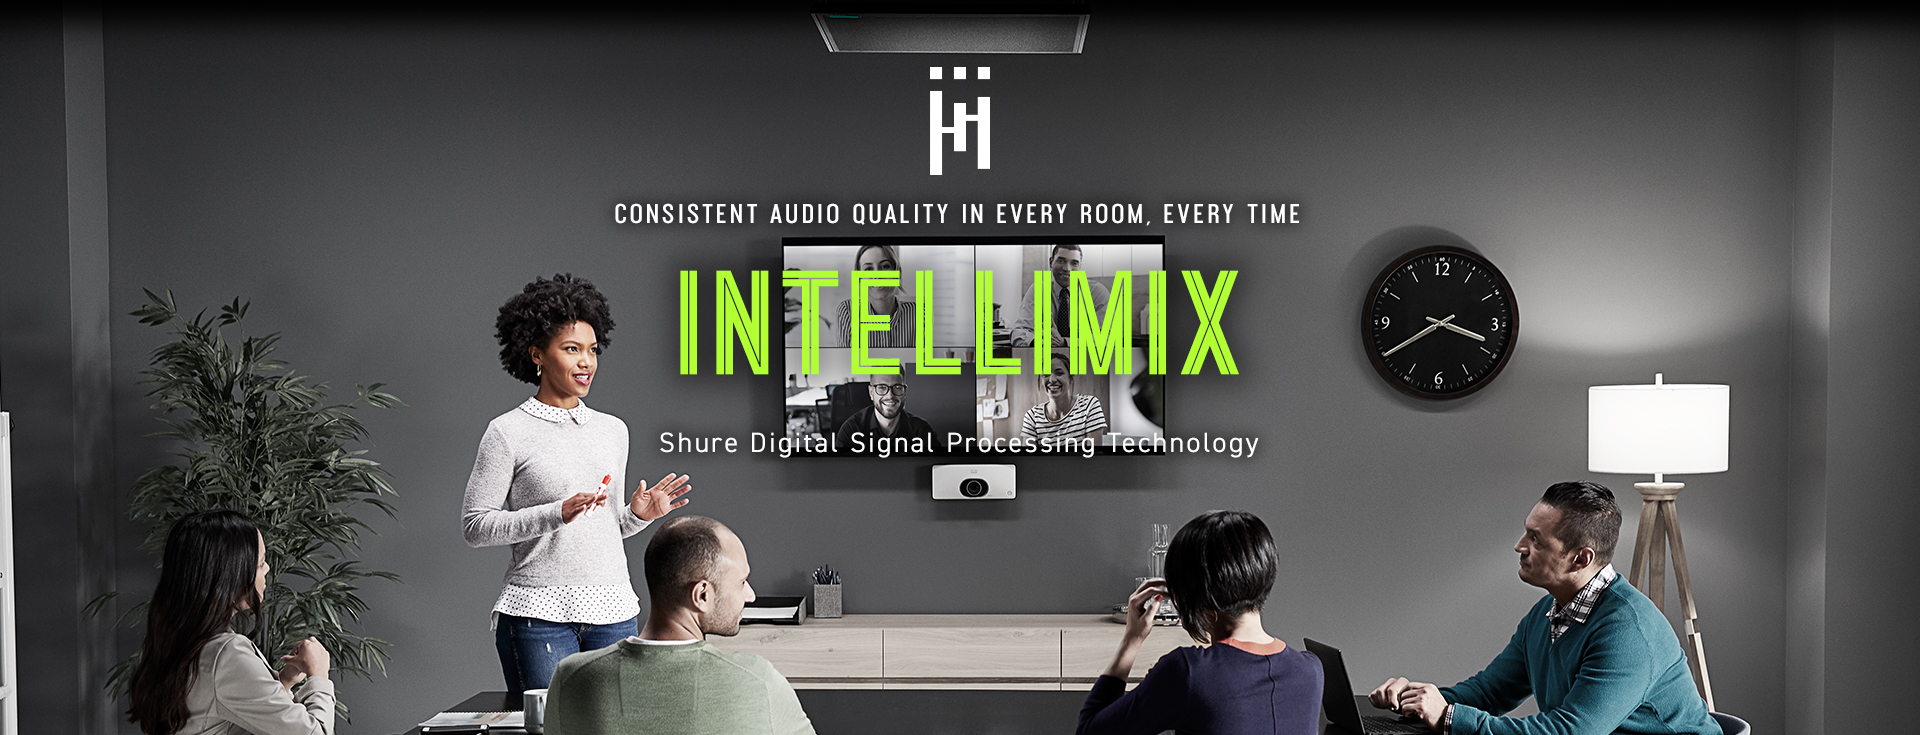 Shure IntelliMix - Consistent audio quality in every room every time